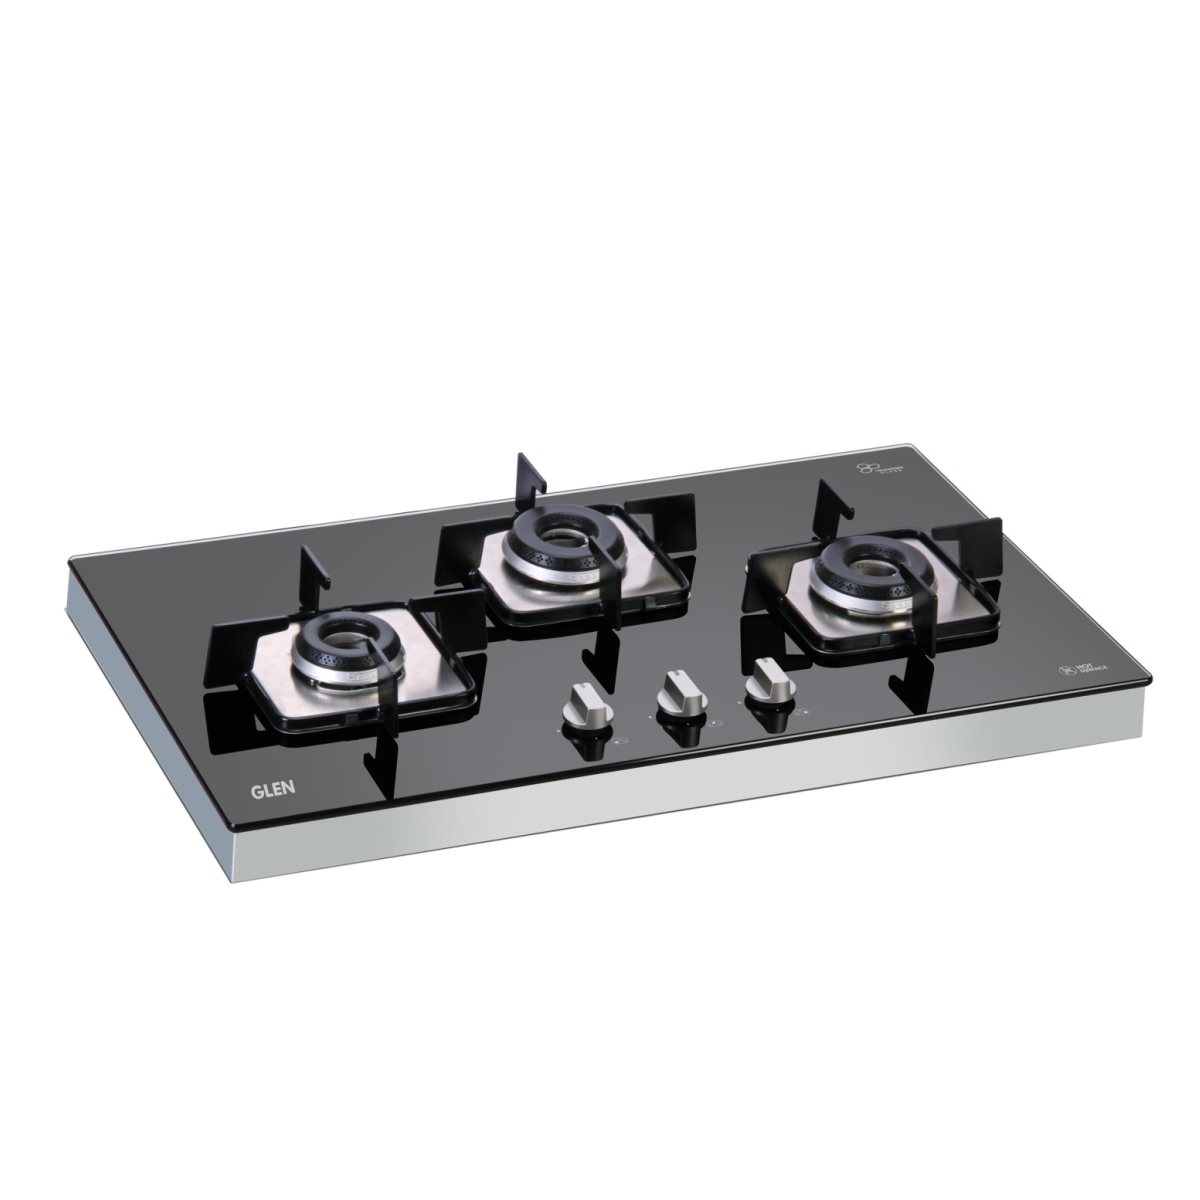 Glen 3 Burner Kitchen Hob 1073 SQF by Glen